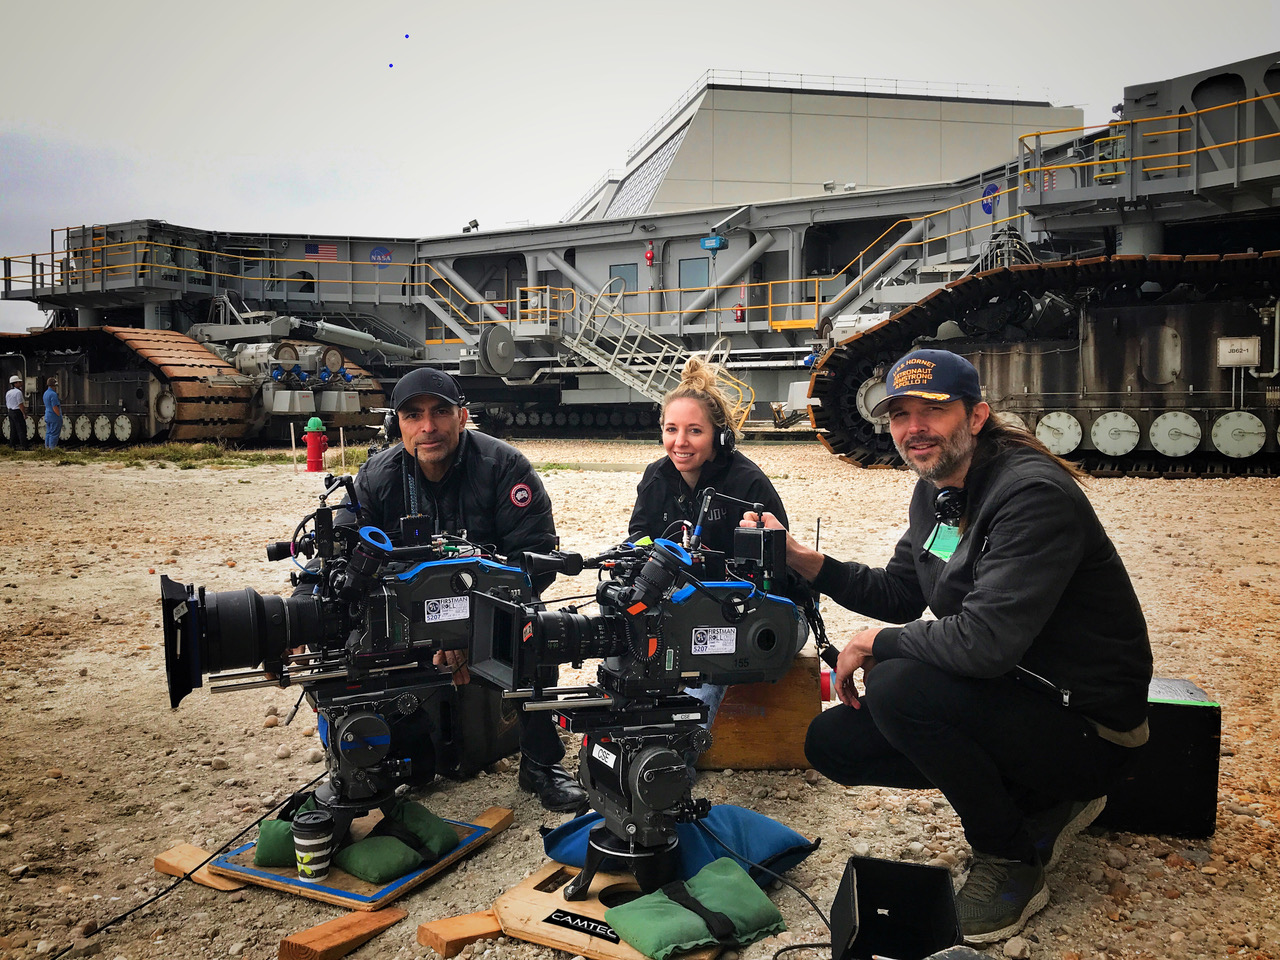 (Left to right) 1st AC Jorge Sanchez, 2nd AC Melissa Fisher, and DP Linus Sandgren, on location for  First Man  with two Aaton Penelope 35mm cameras.